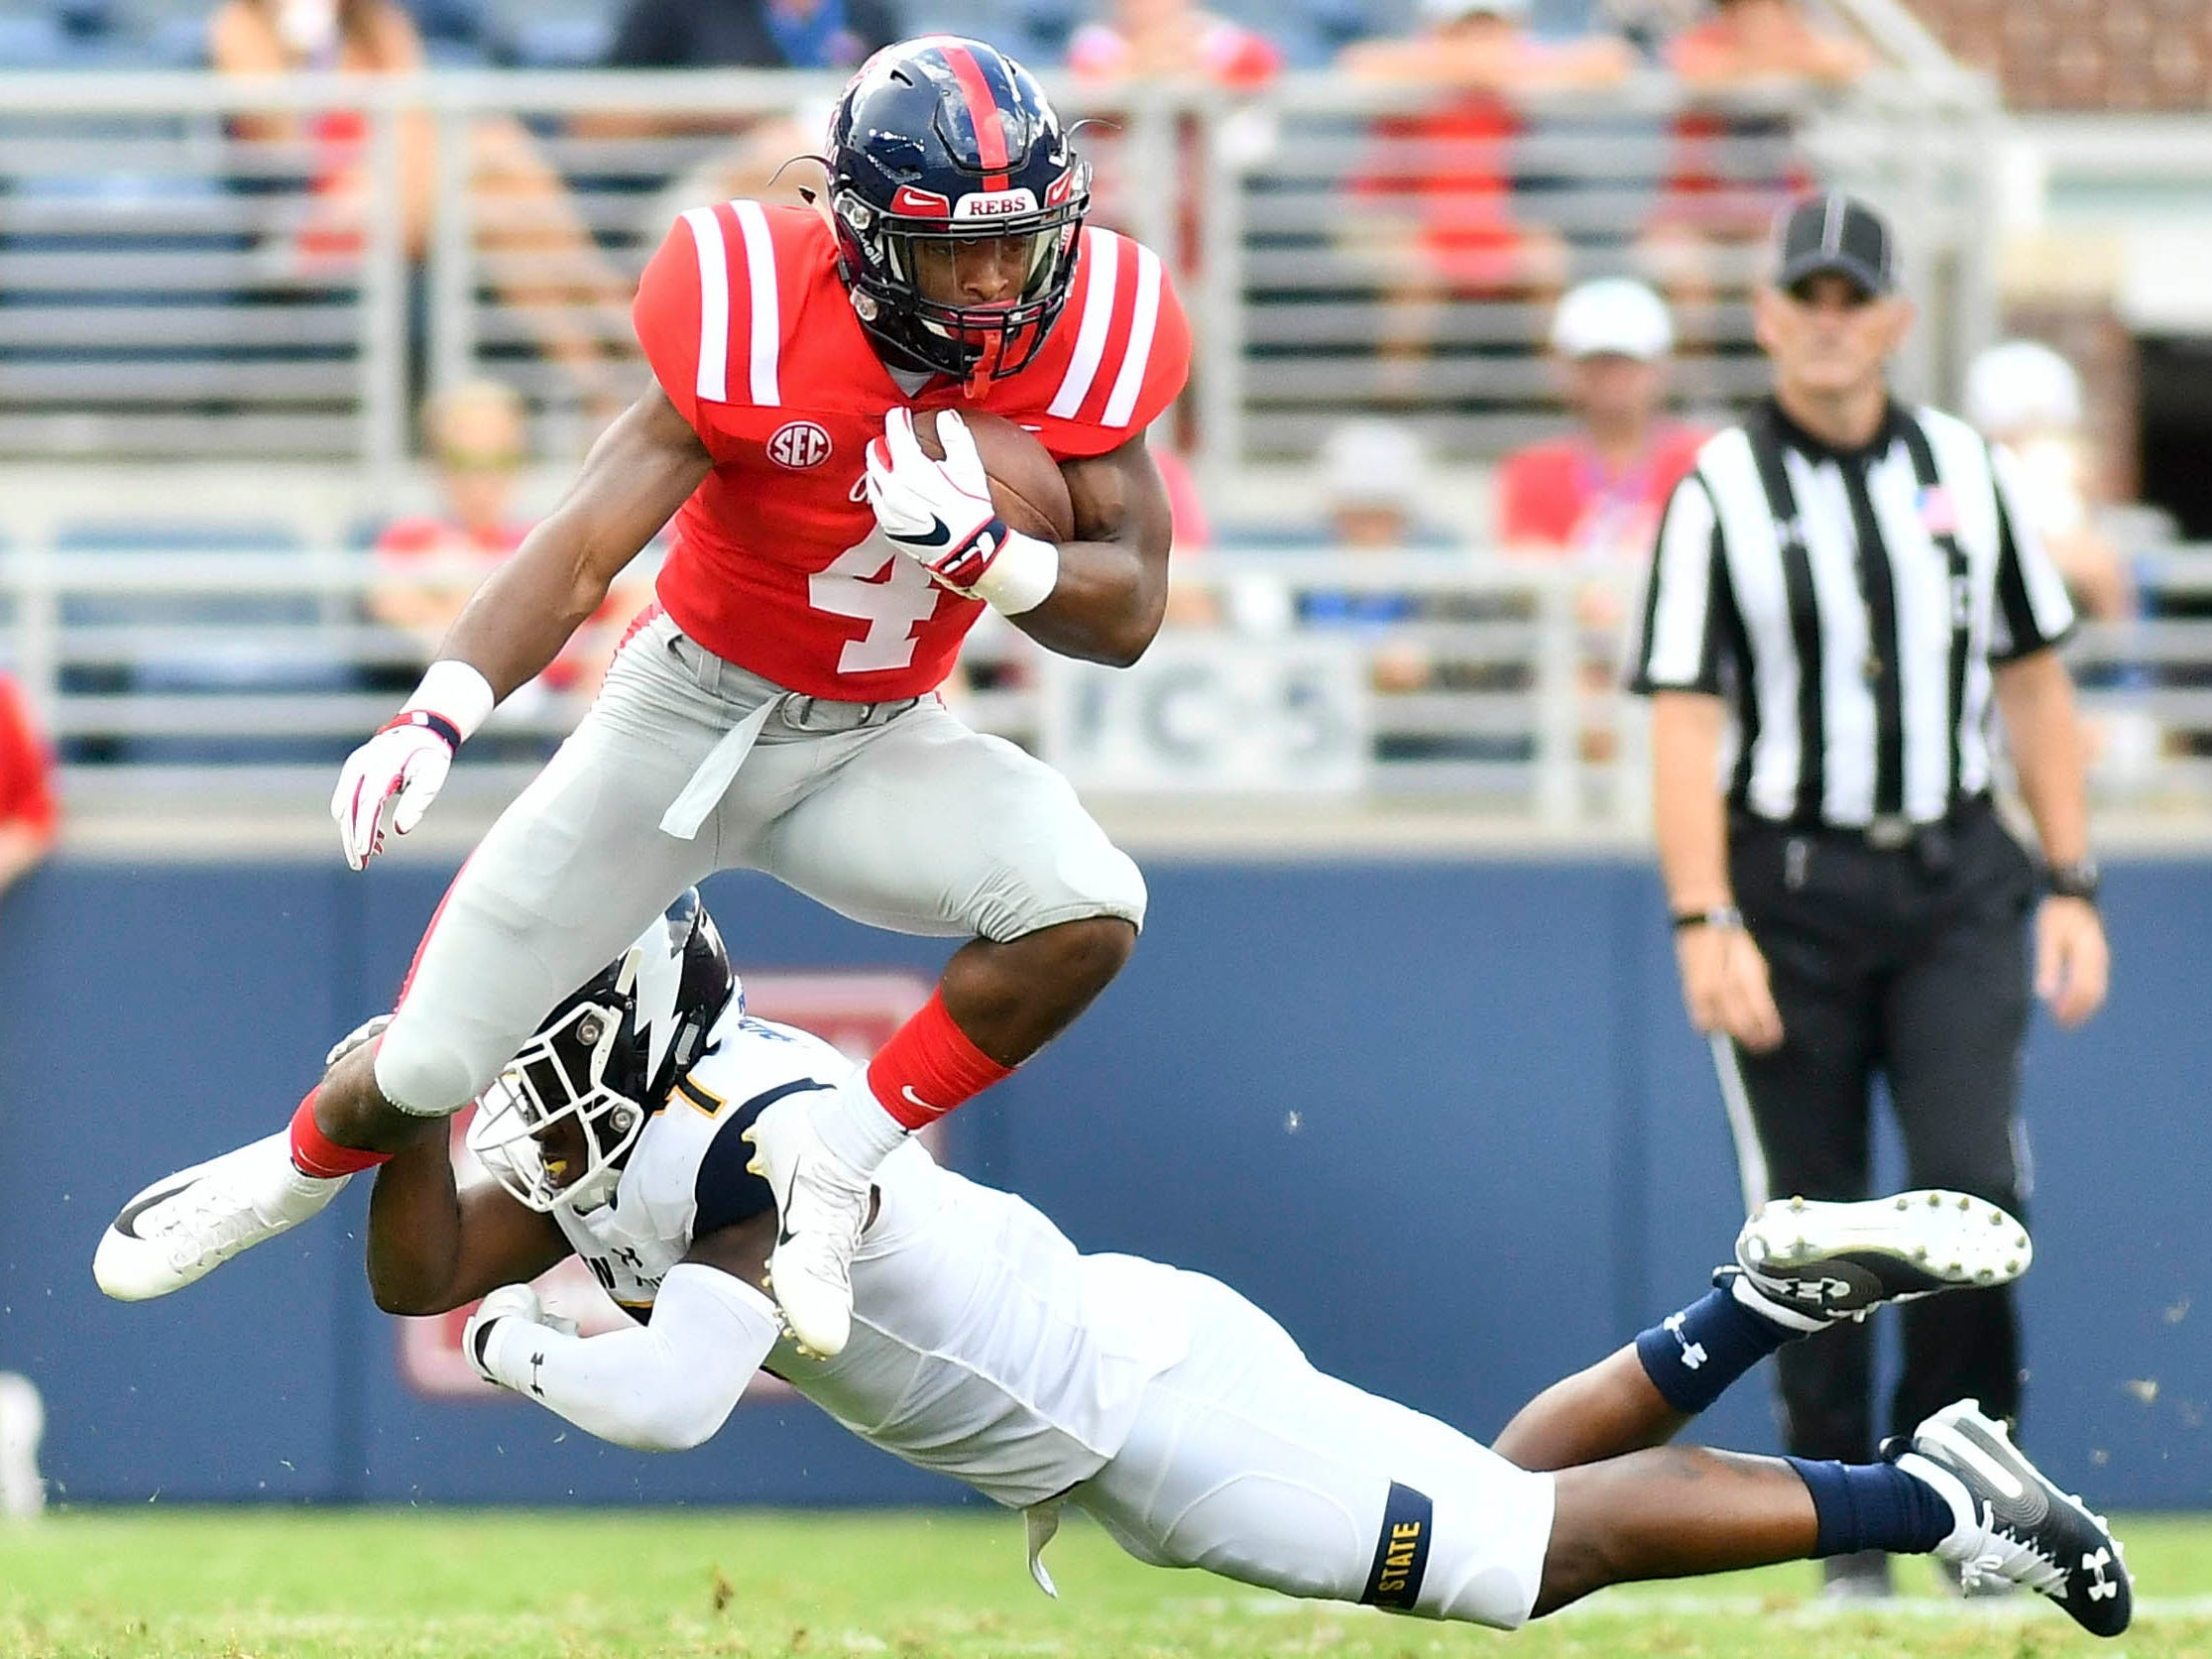 Mississippi Rebels running back Tylan Knight avoids a tackle by Kent State Golden Flashes cornerback Jamal Parker during the second quarter at Vaught-Hemingway Stadium.